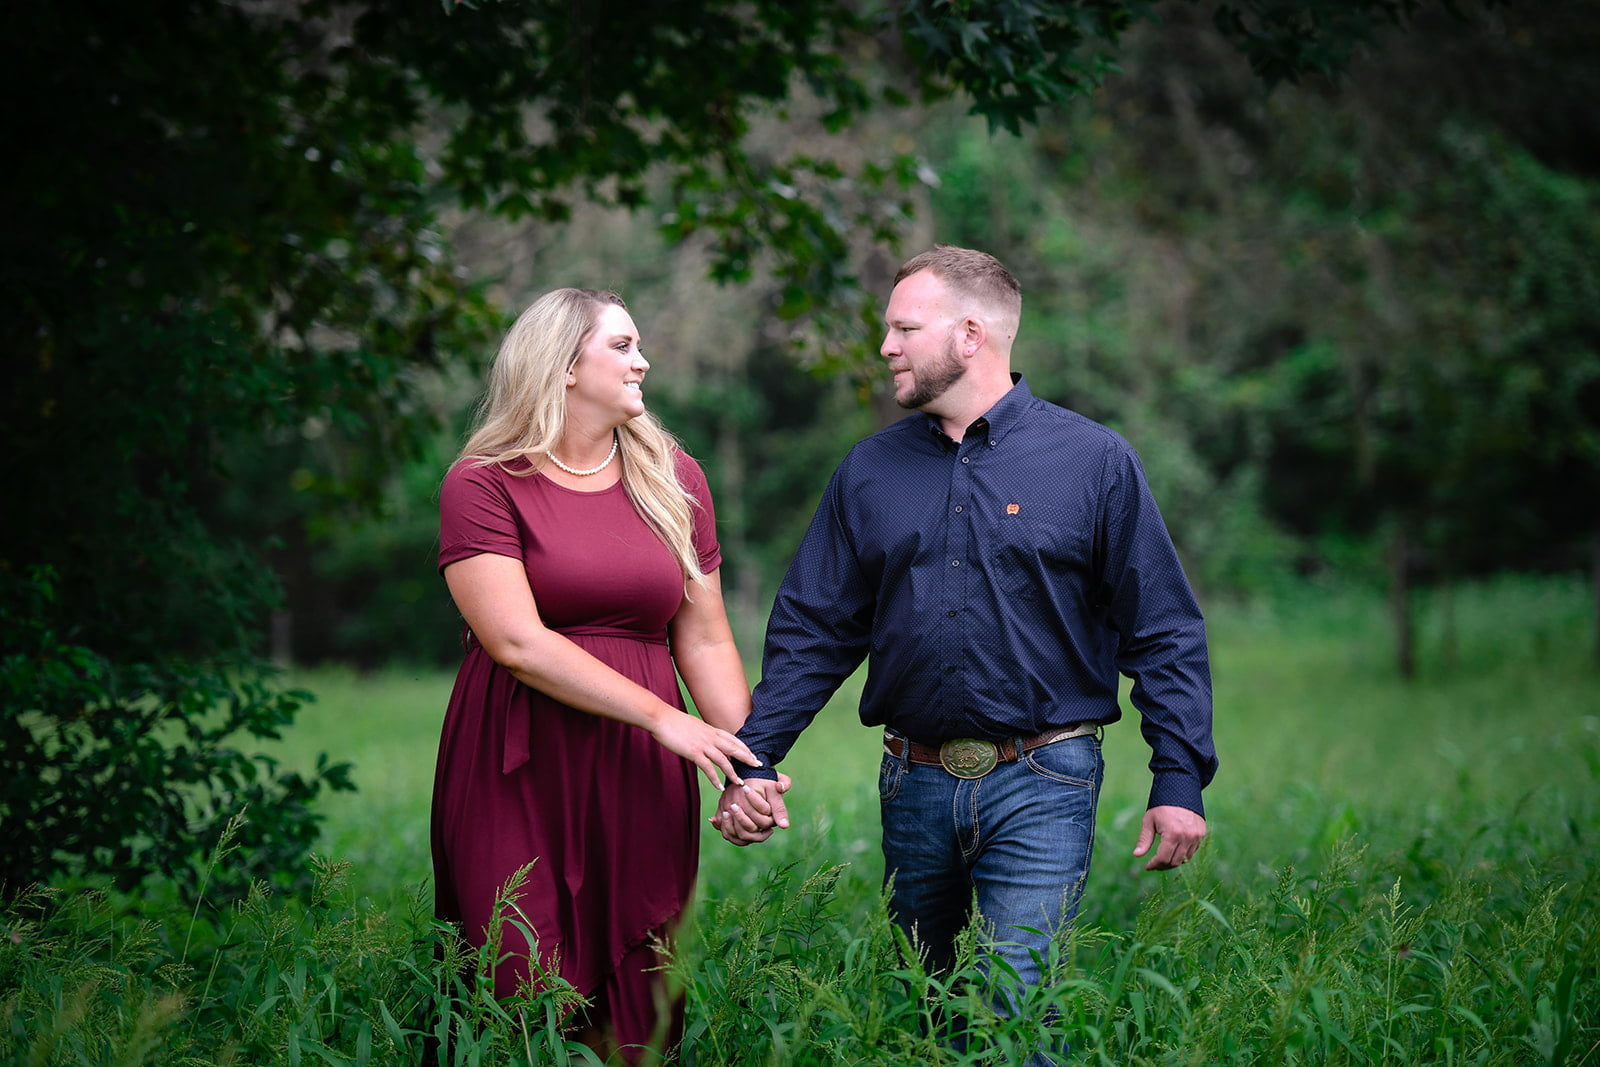 Couple photo taken outside by Lisa Rowland Photography in Trenton, Florida